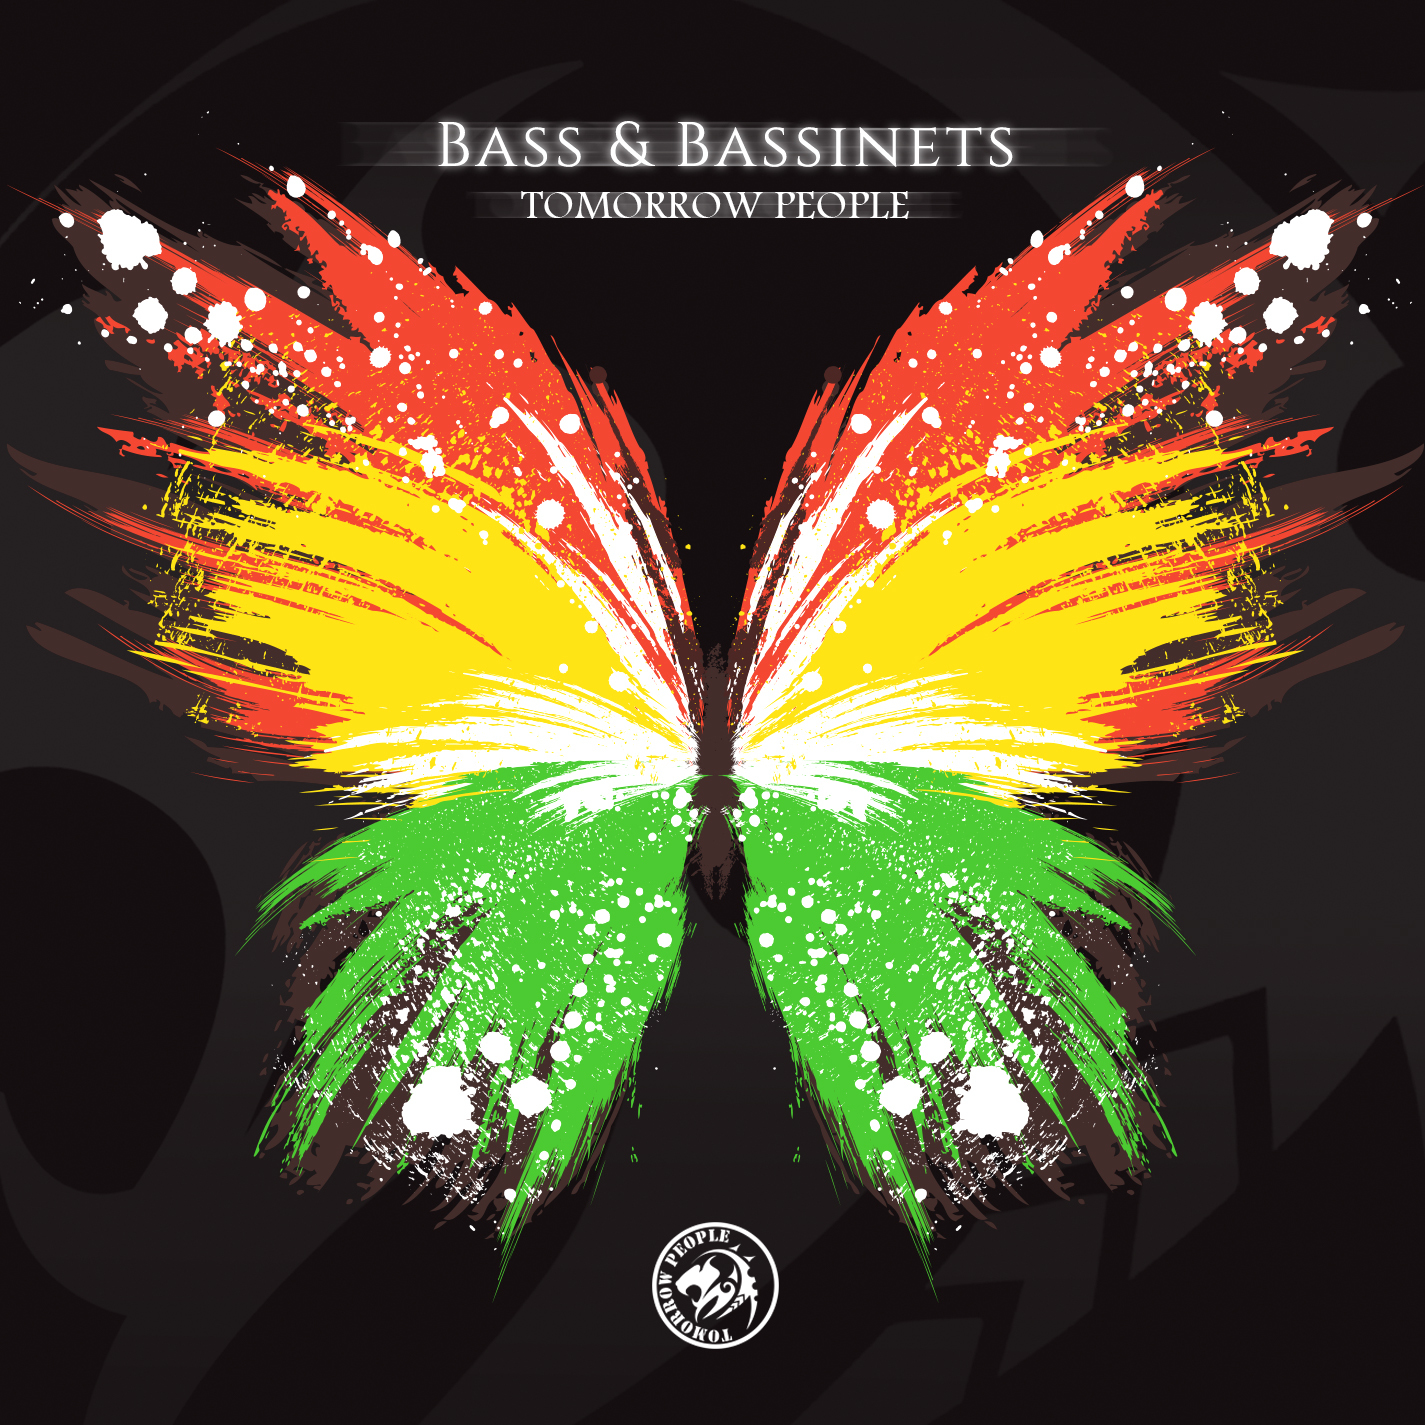 Bass & Bassinets by Tomorrow People image